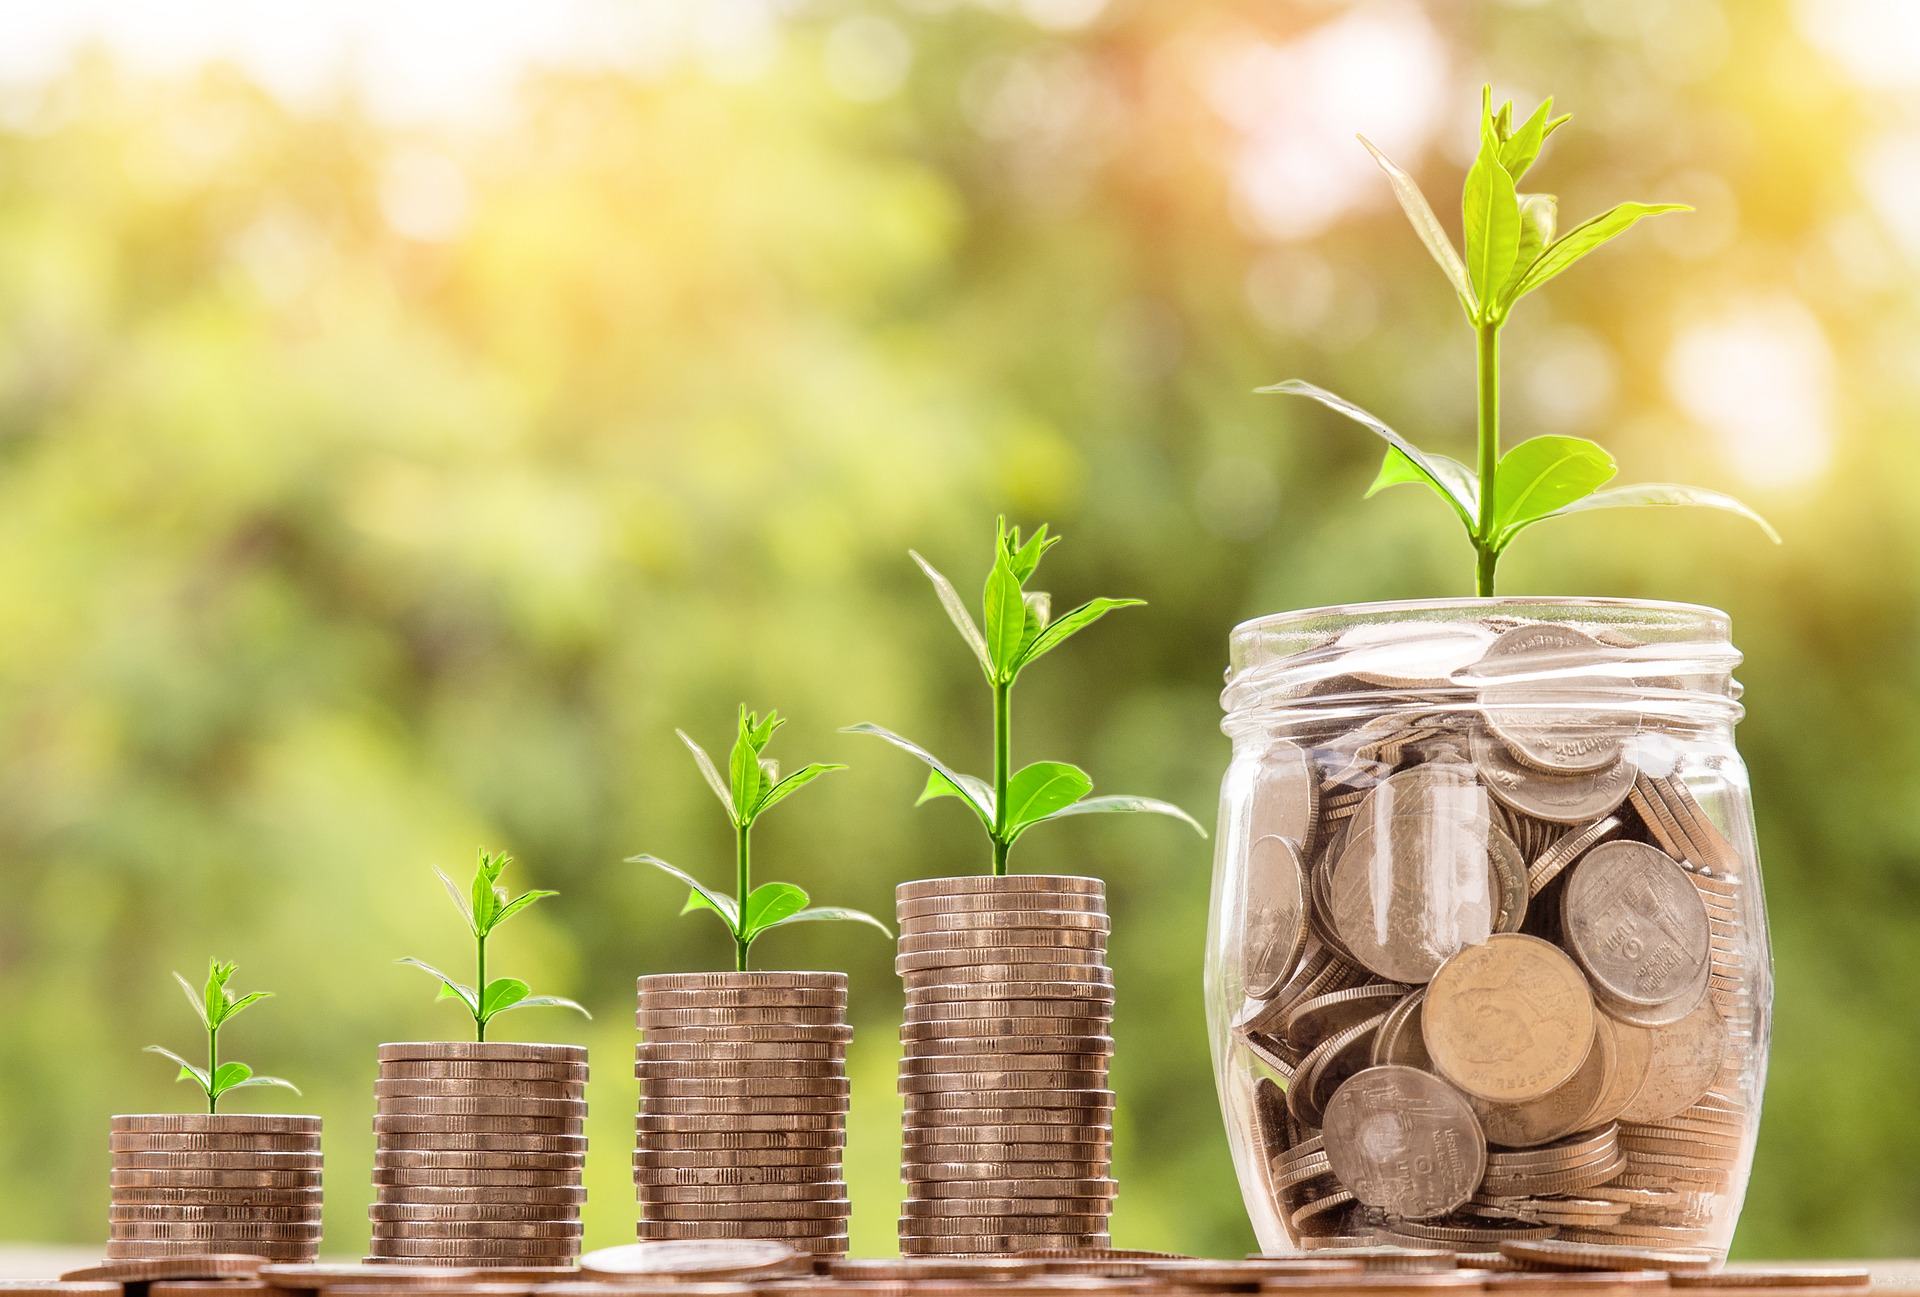 If you are looking for ways to save more money, Runey & Associates Wealth Management can help. We specialize in comprehensive financial planning and investment management solutions designed for you to find joy in retirement spending.